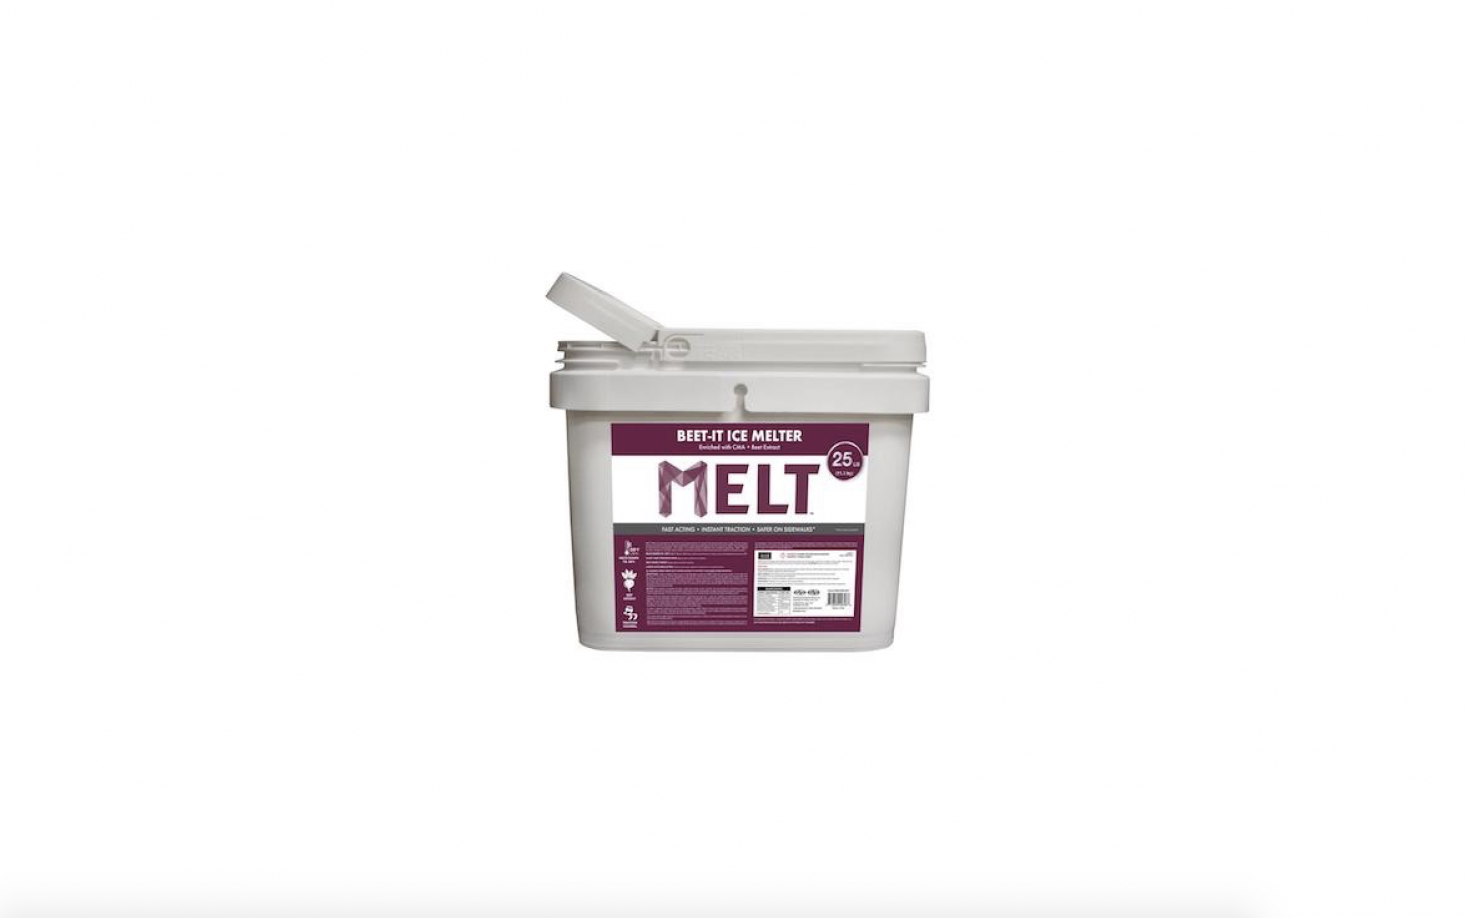 And where's the nearest beet juice emporium, you ask? You don't have to stir up your own concoction; Snow Joe makes a mix called Melt-